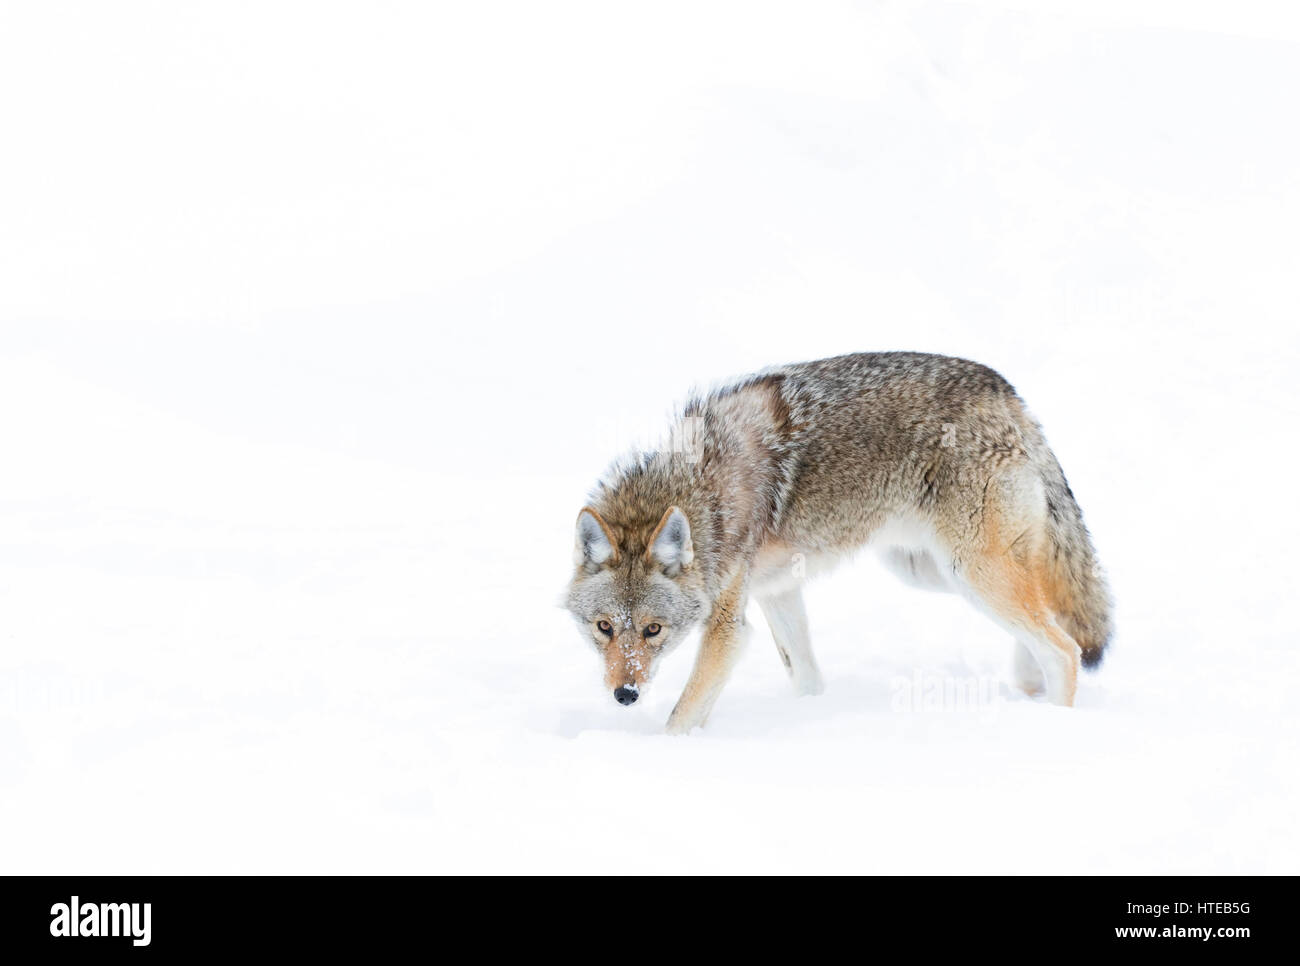 A lone coyote (Canis latrans) isolated against a white background standing in the winter snow in Canada - Stock Image